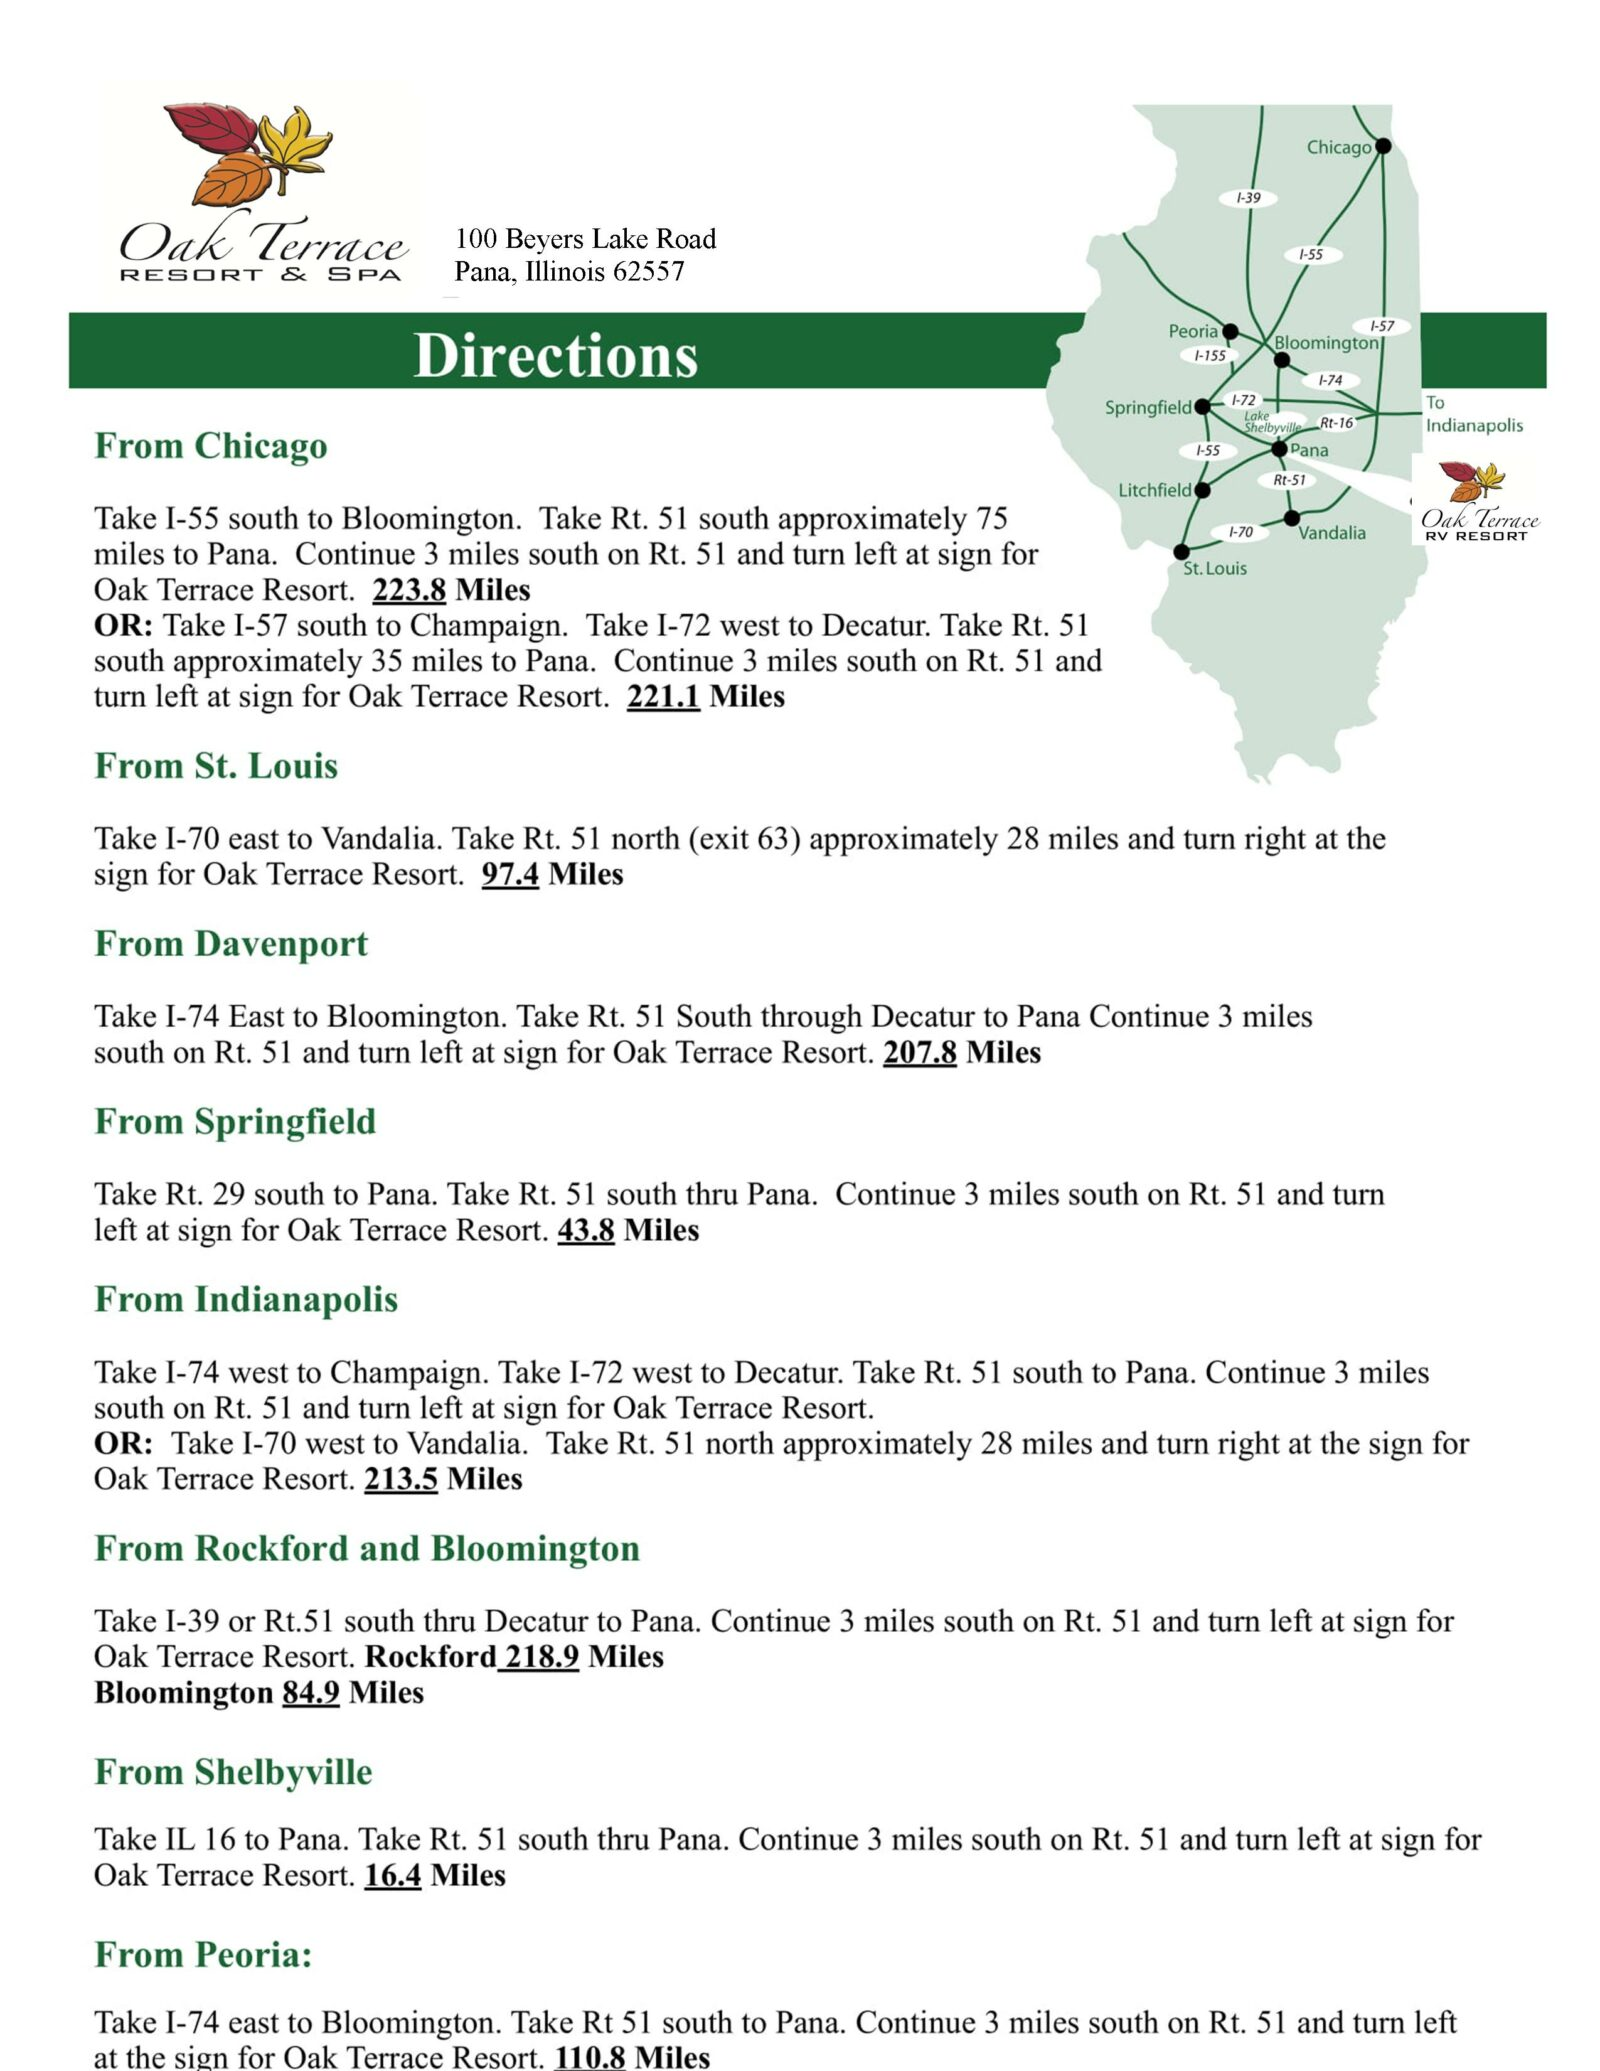 Oak Terrace RV Resort Directions